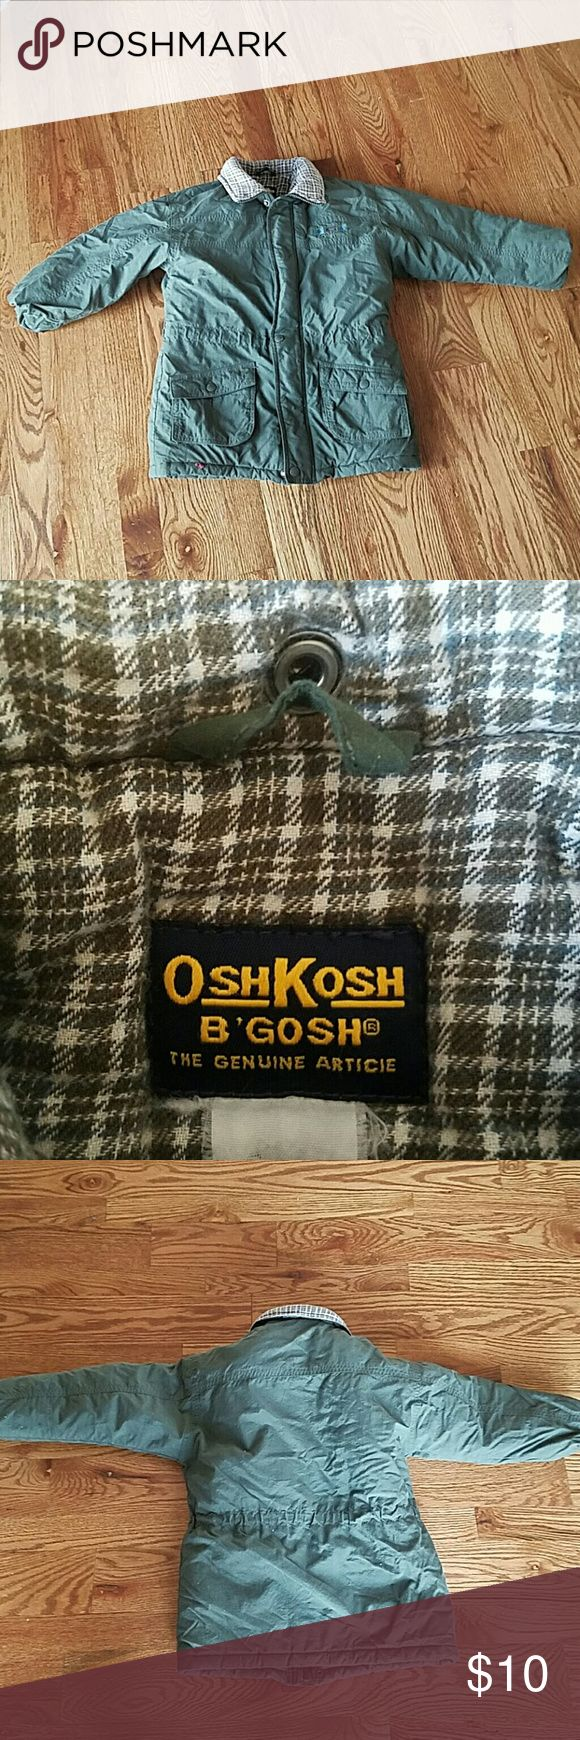 OshKosh Boys Winter Coat Excellent used condition.  Lined with a soft flannel fabric.  Size 6/7 Osh Kosh Jackets & Coats